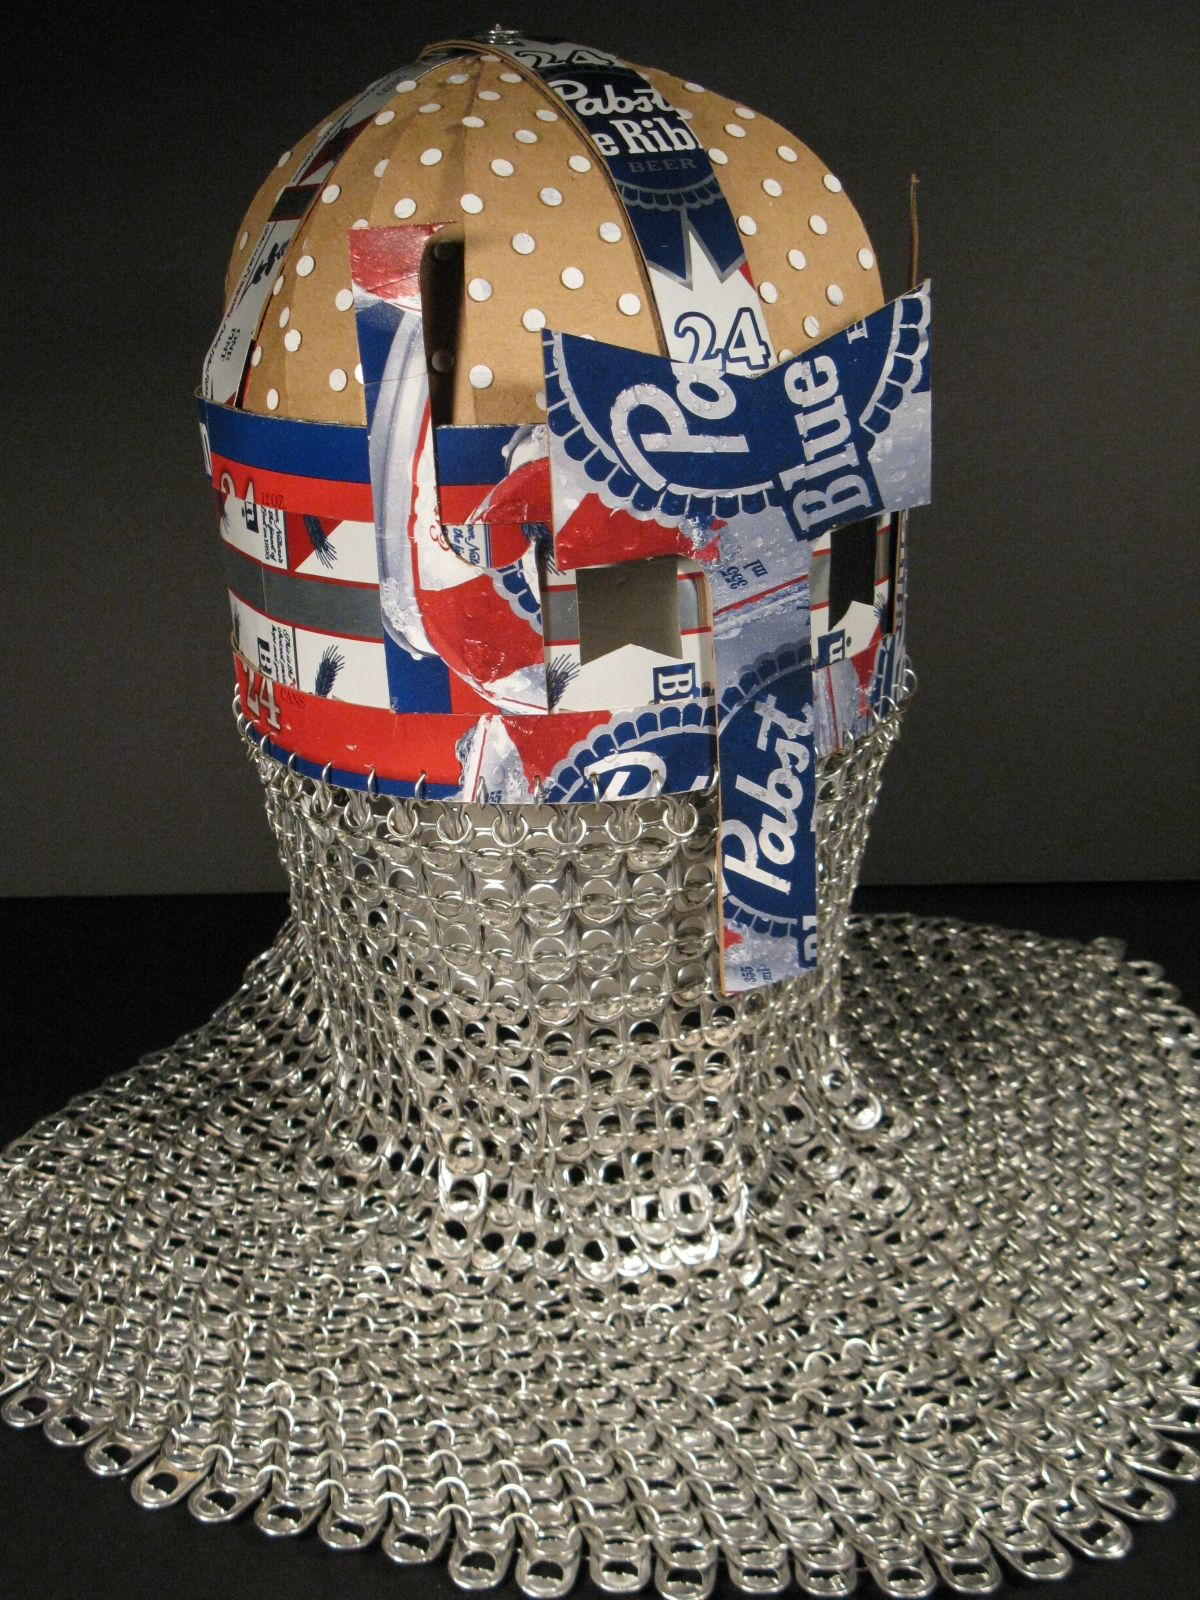 Midevil Helmet Pabst blue ribbon, Blue ribbon, Blue